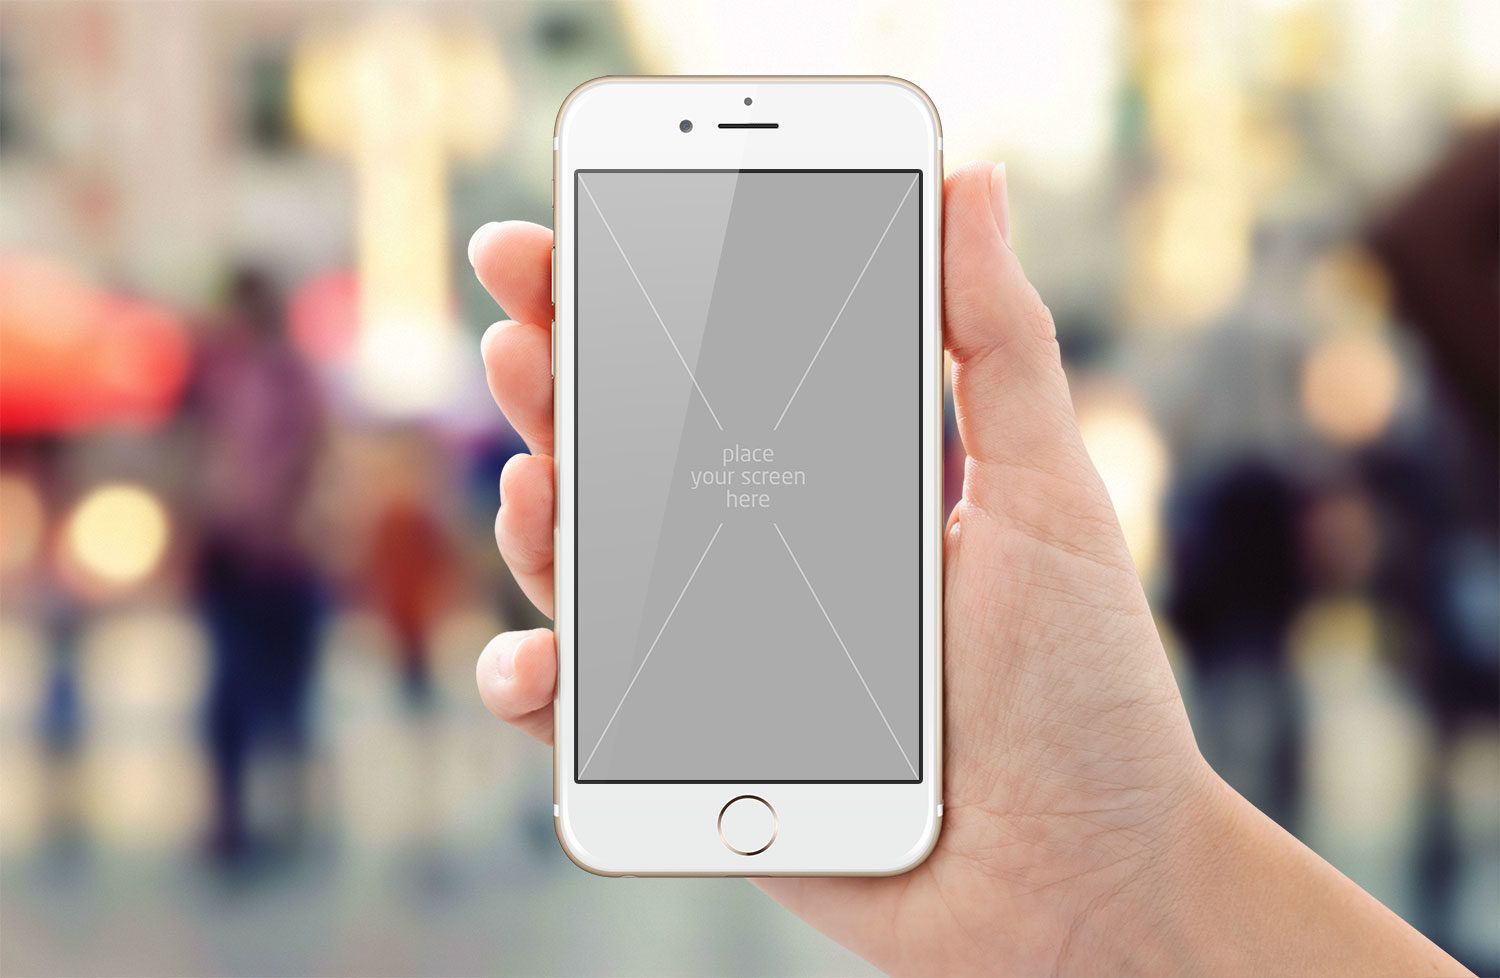 Download Free Iphone 6 6s Mockup Black And White Free Mockup White Iphone Free Iphone 6 Iphone